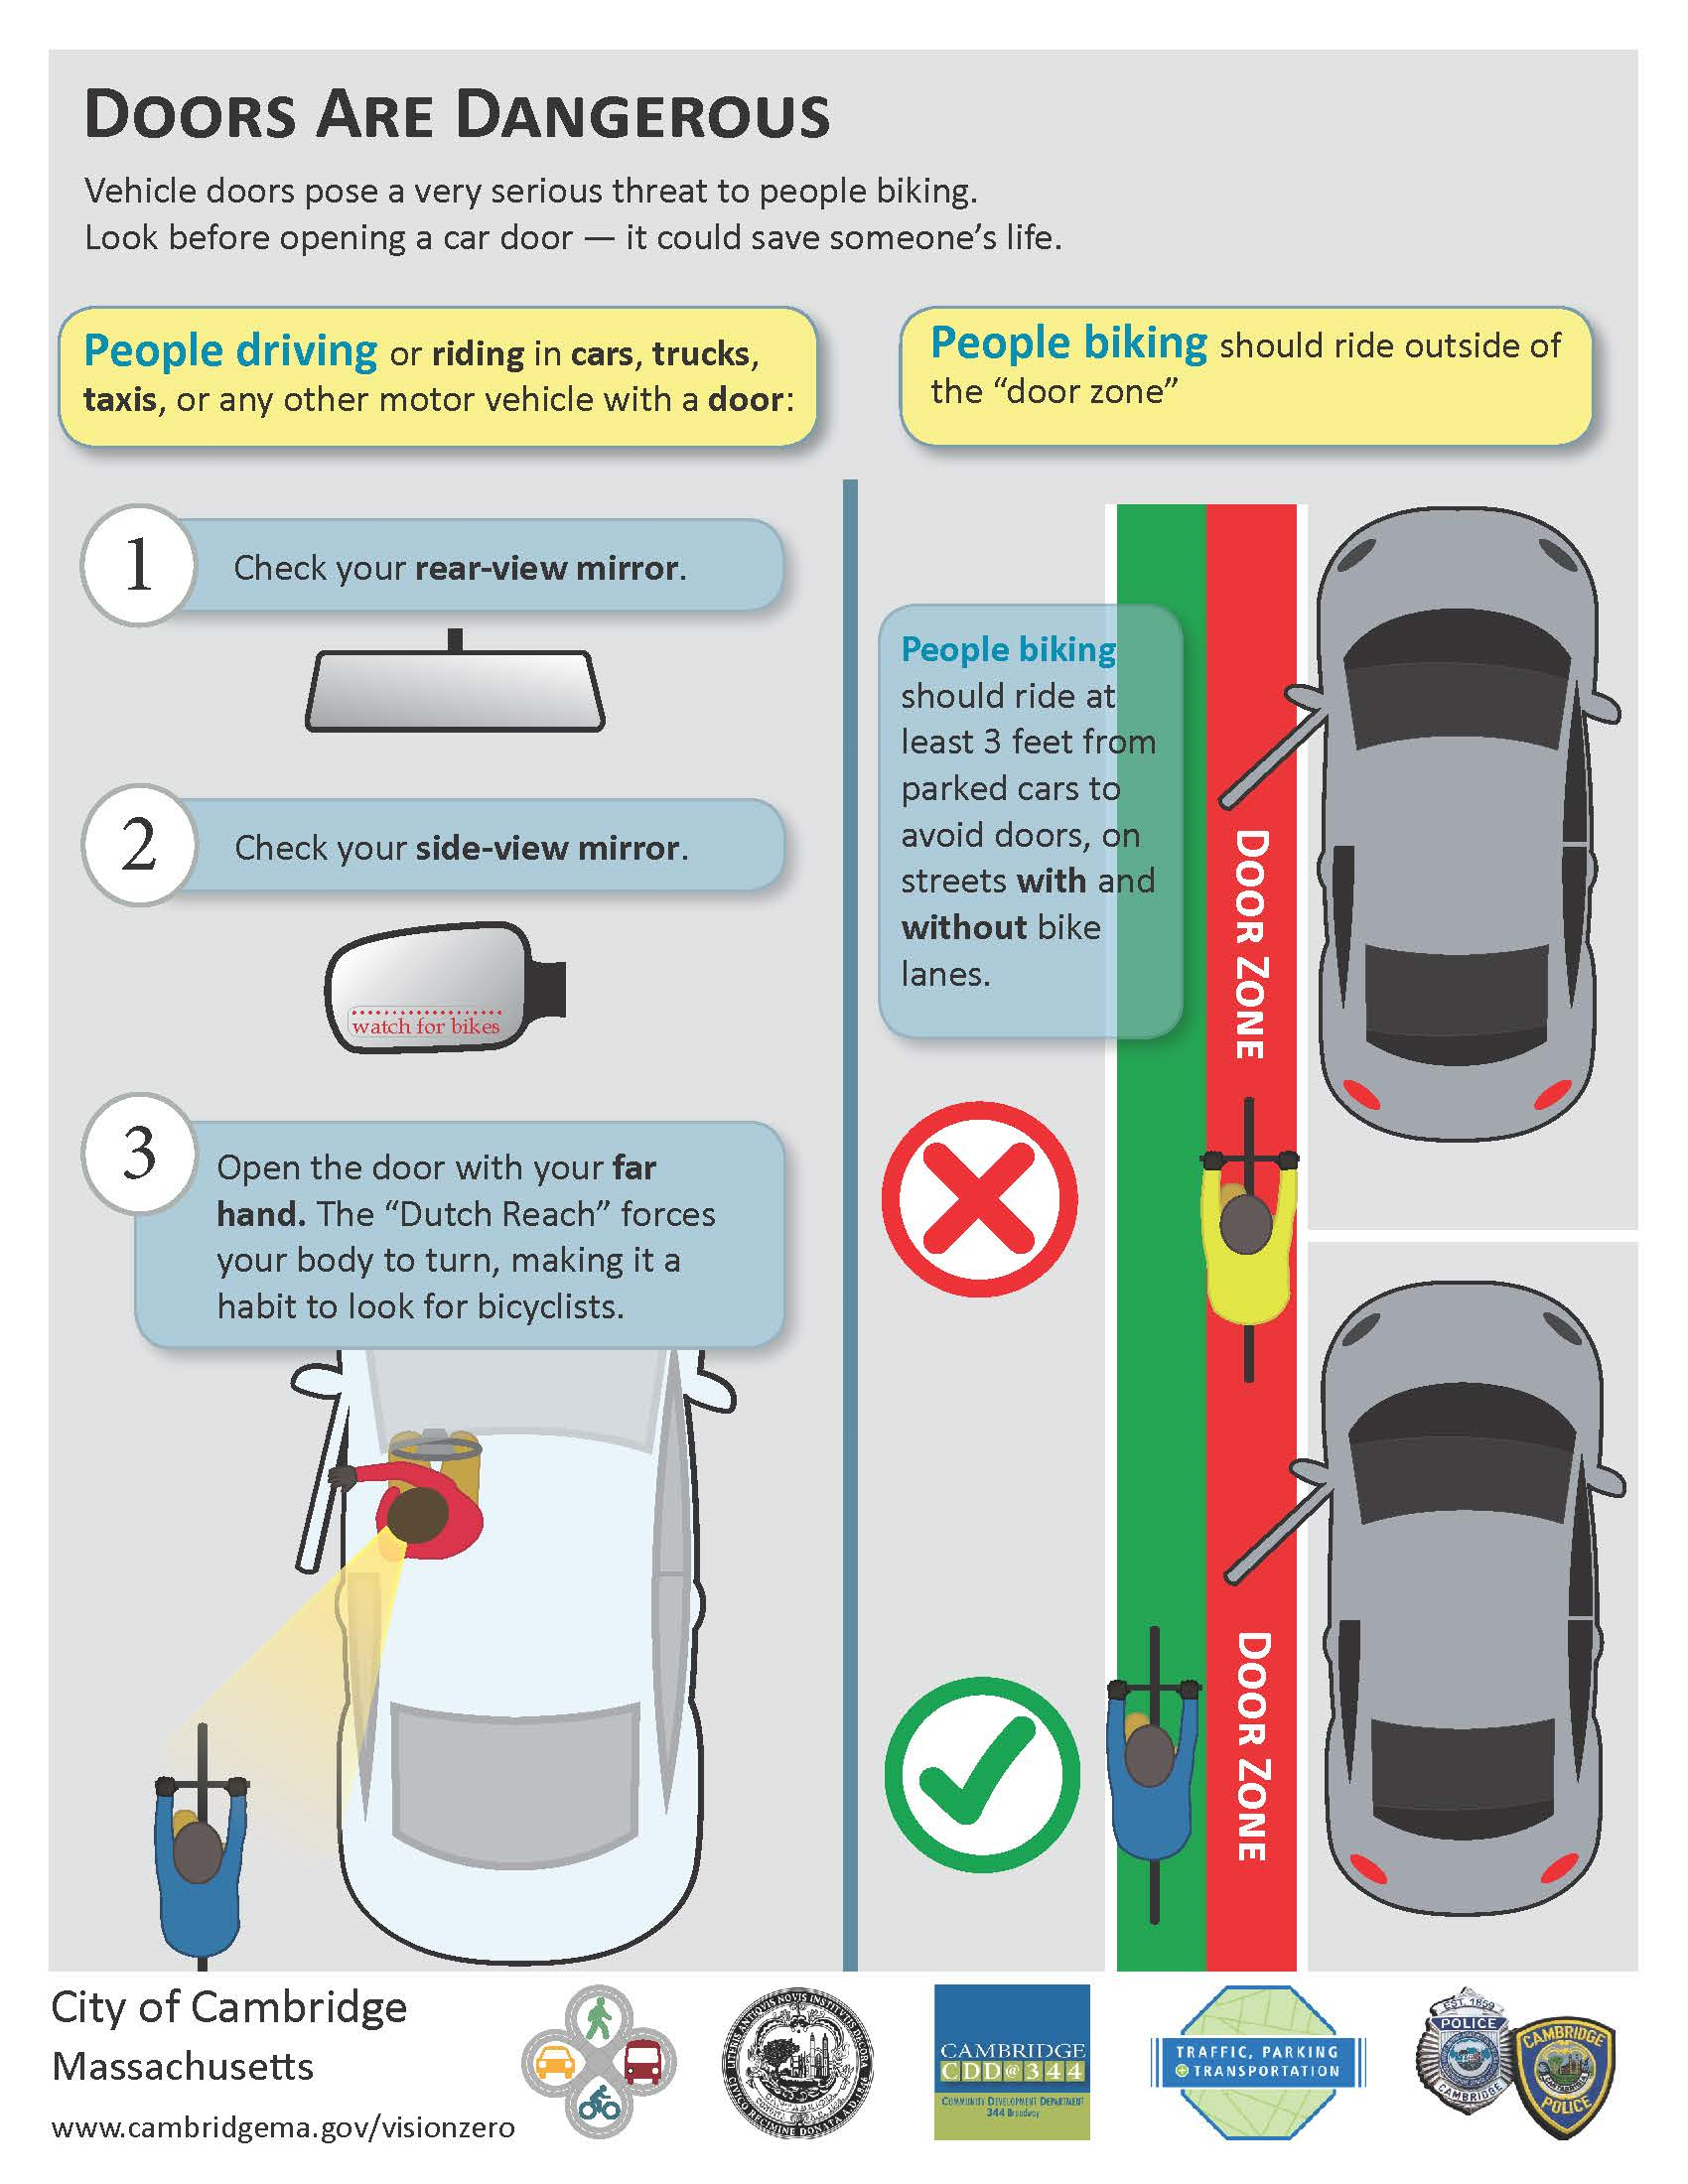 Instructions to driver to check rear & side mirrors, then use far hand Dutch Reach to swivel and look back to look for on-coming traffic. In right hand column, bike lane & door zones are defined.